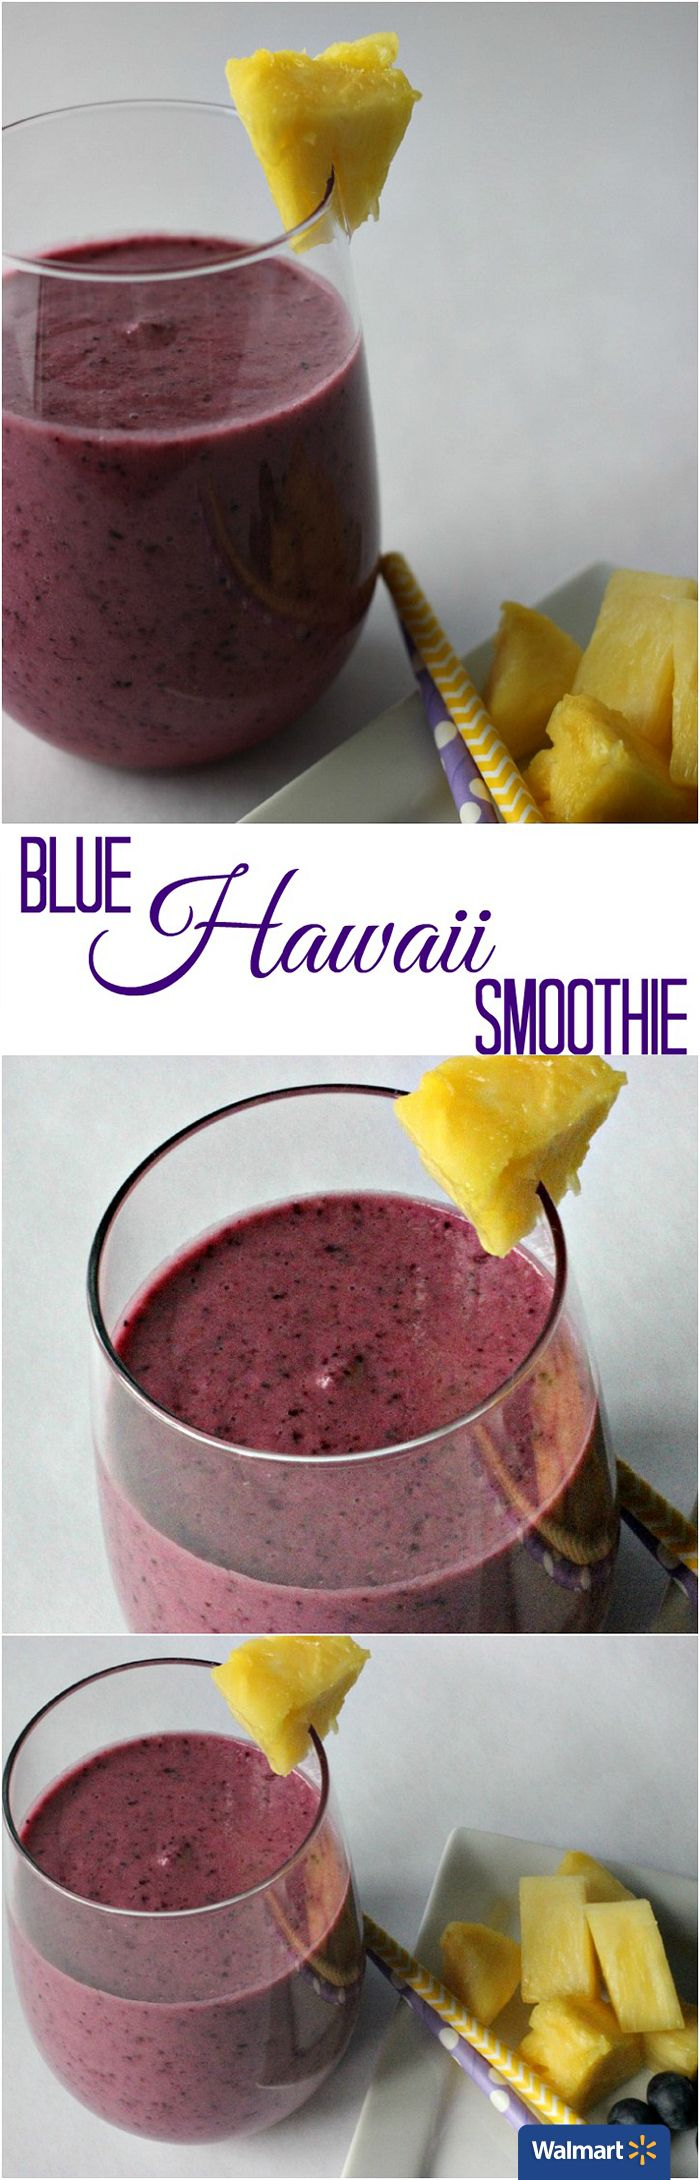 Best 25 blue hawaii ideas on pinterest blue hawaii for Easy fruit tea recipe